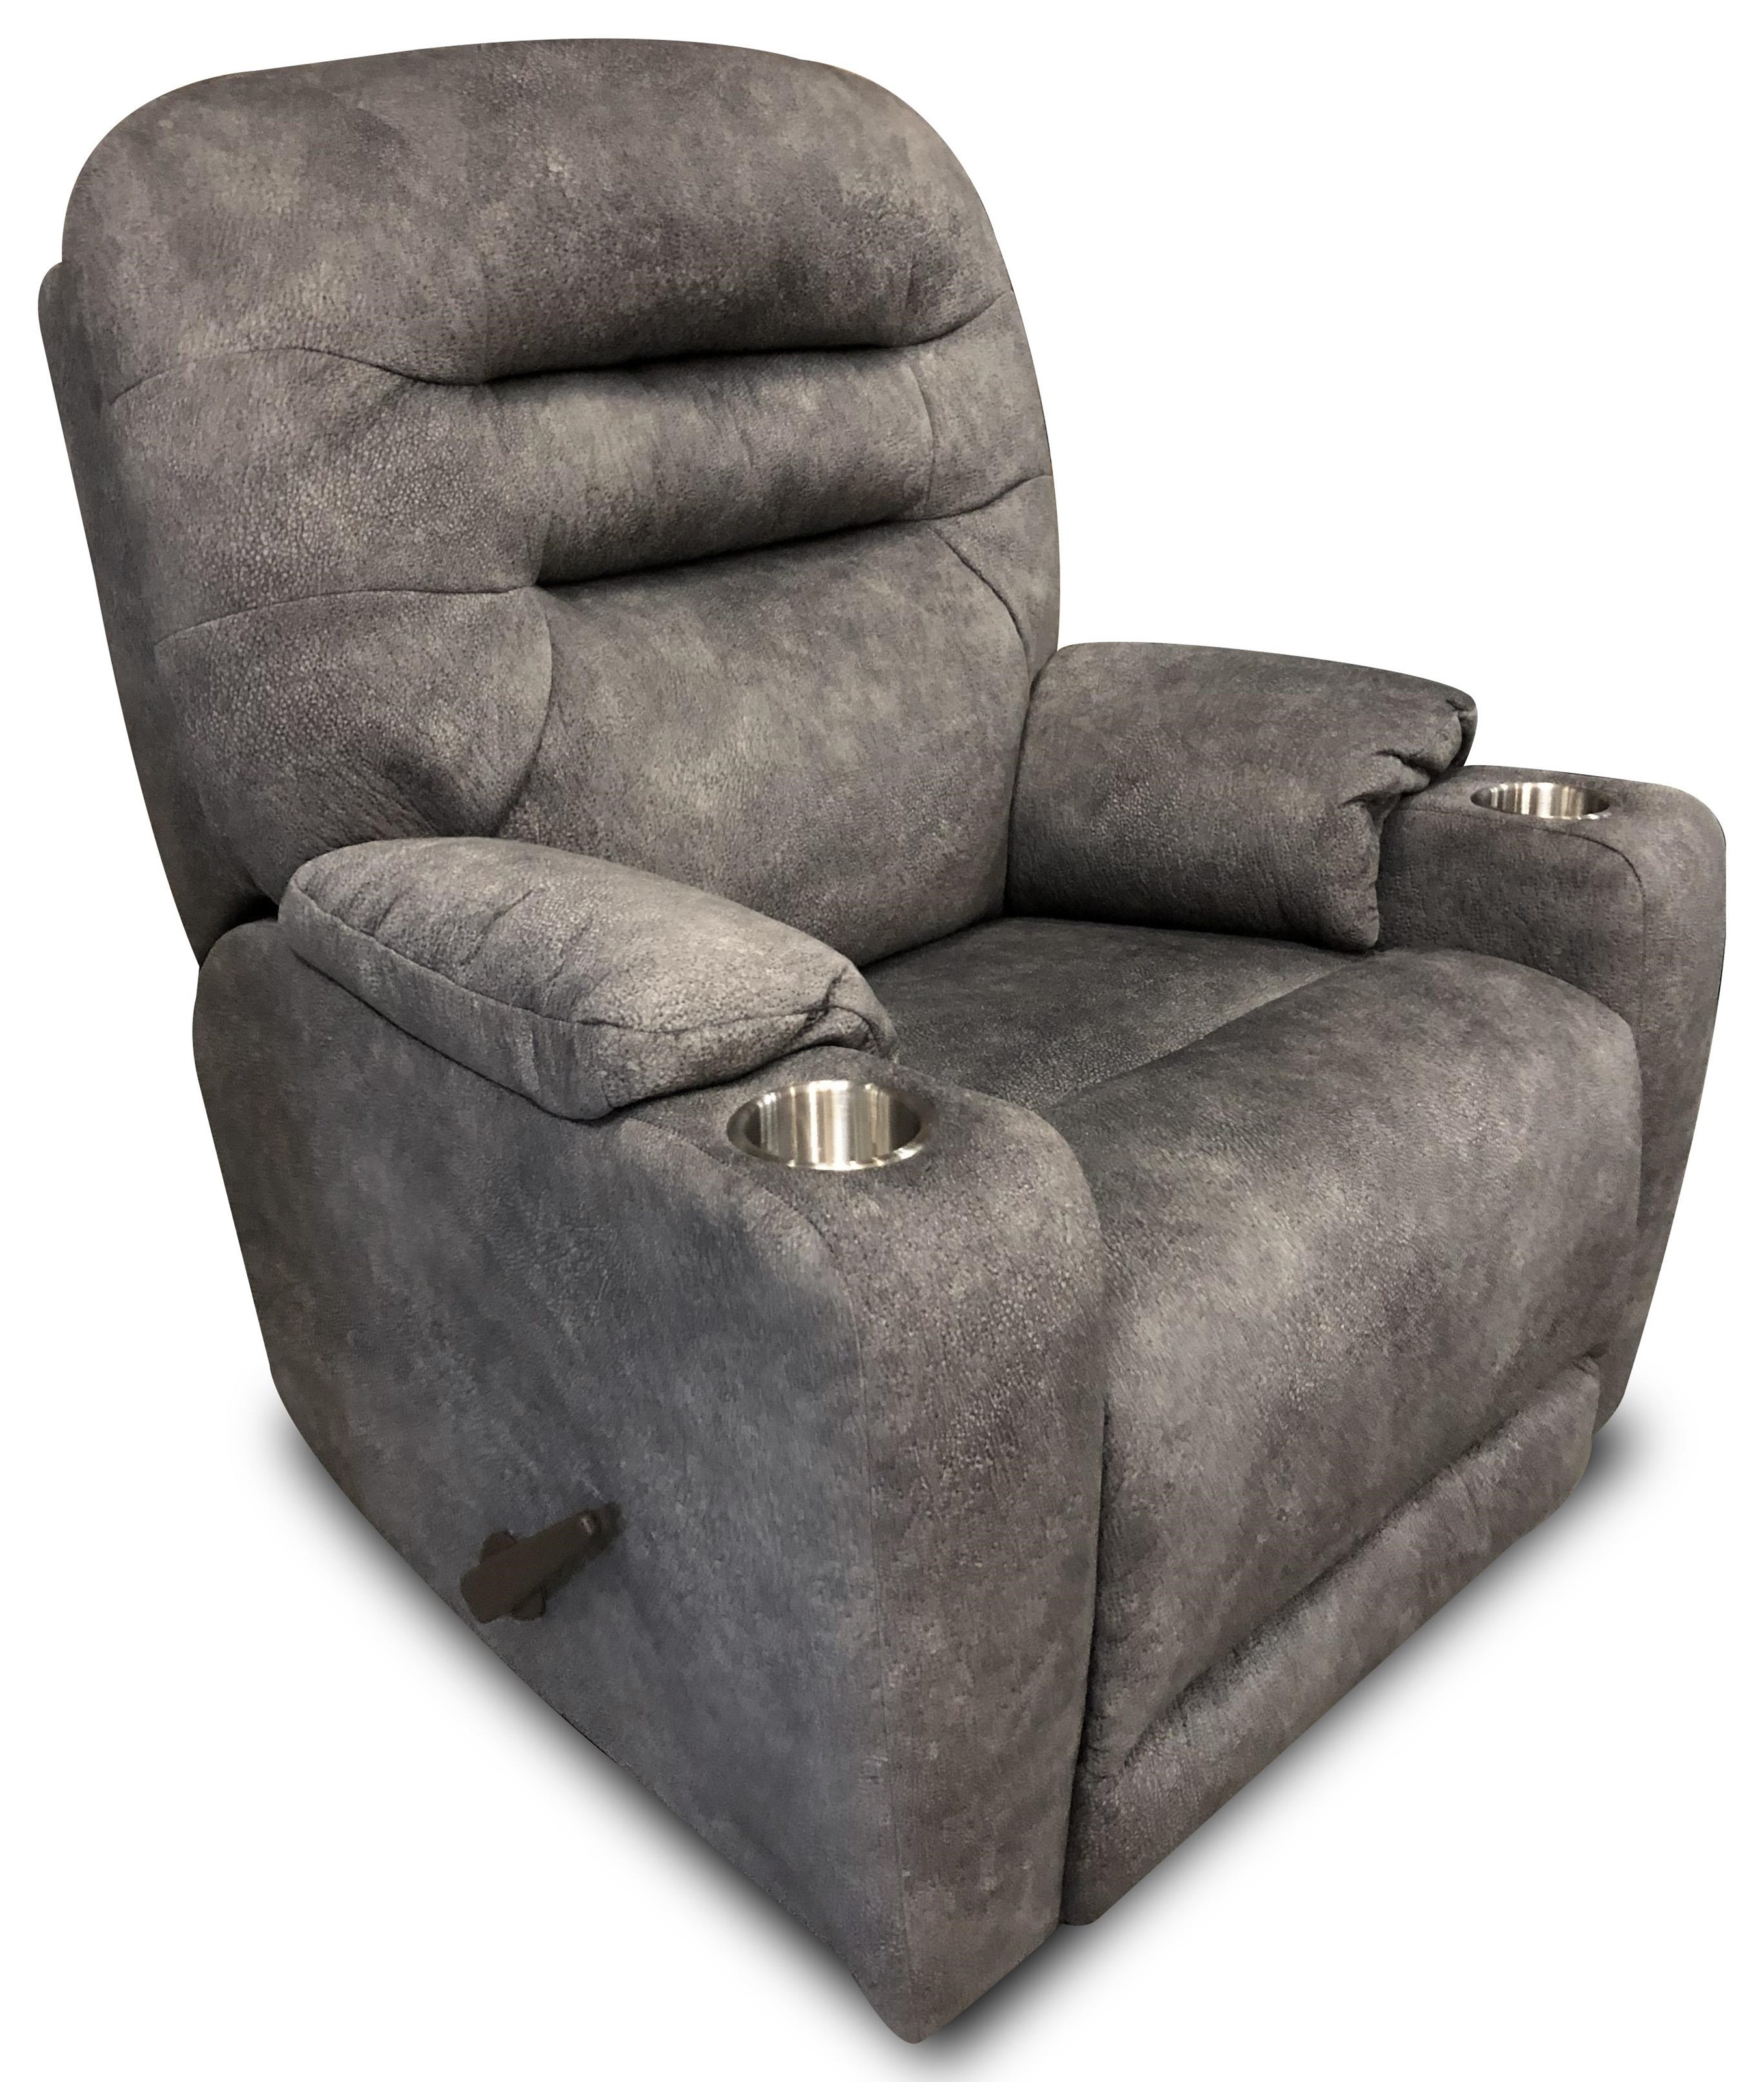 Front Row Rocker Recliner by Southern Motion at Ruby Gordon Home